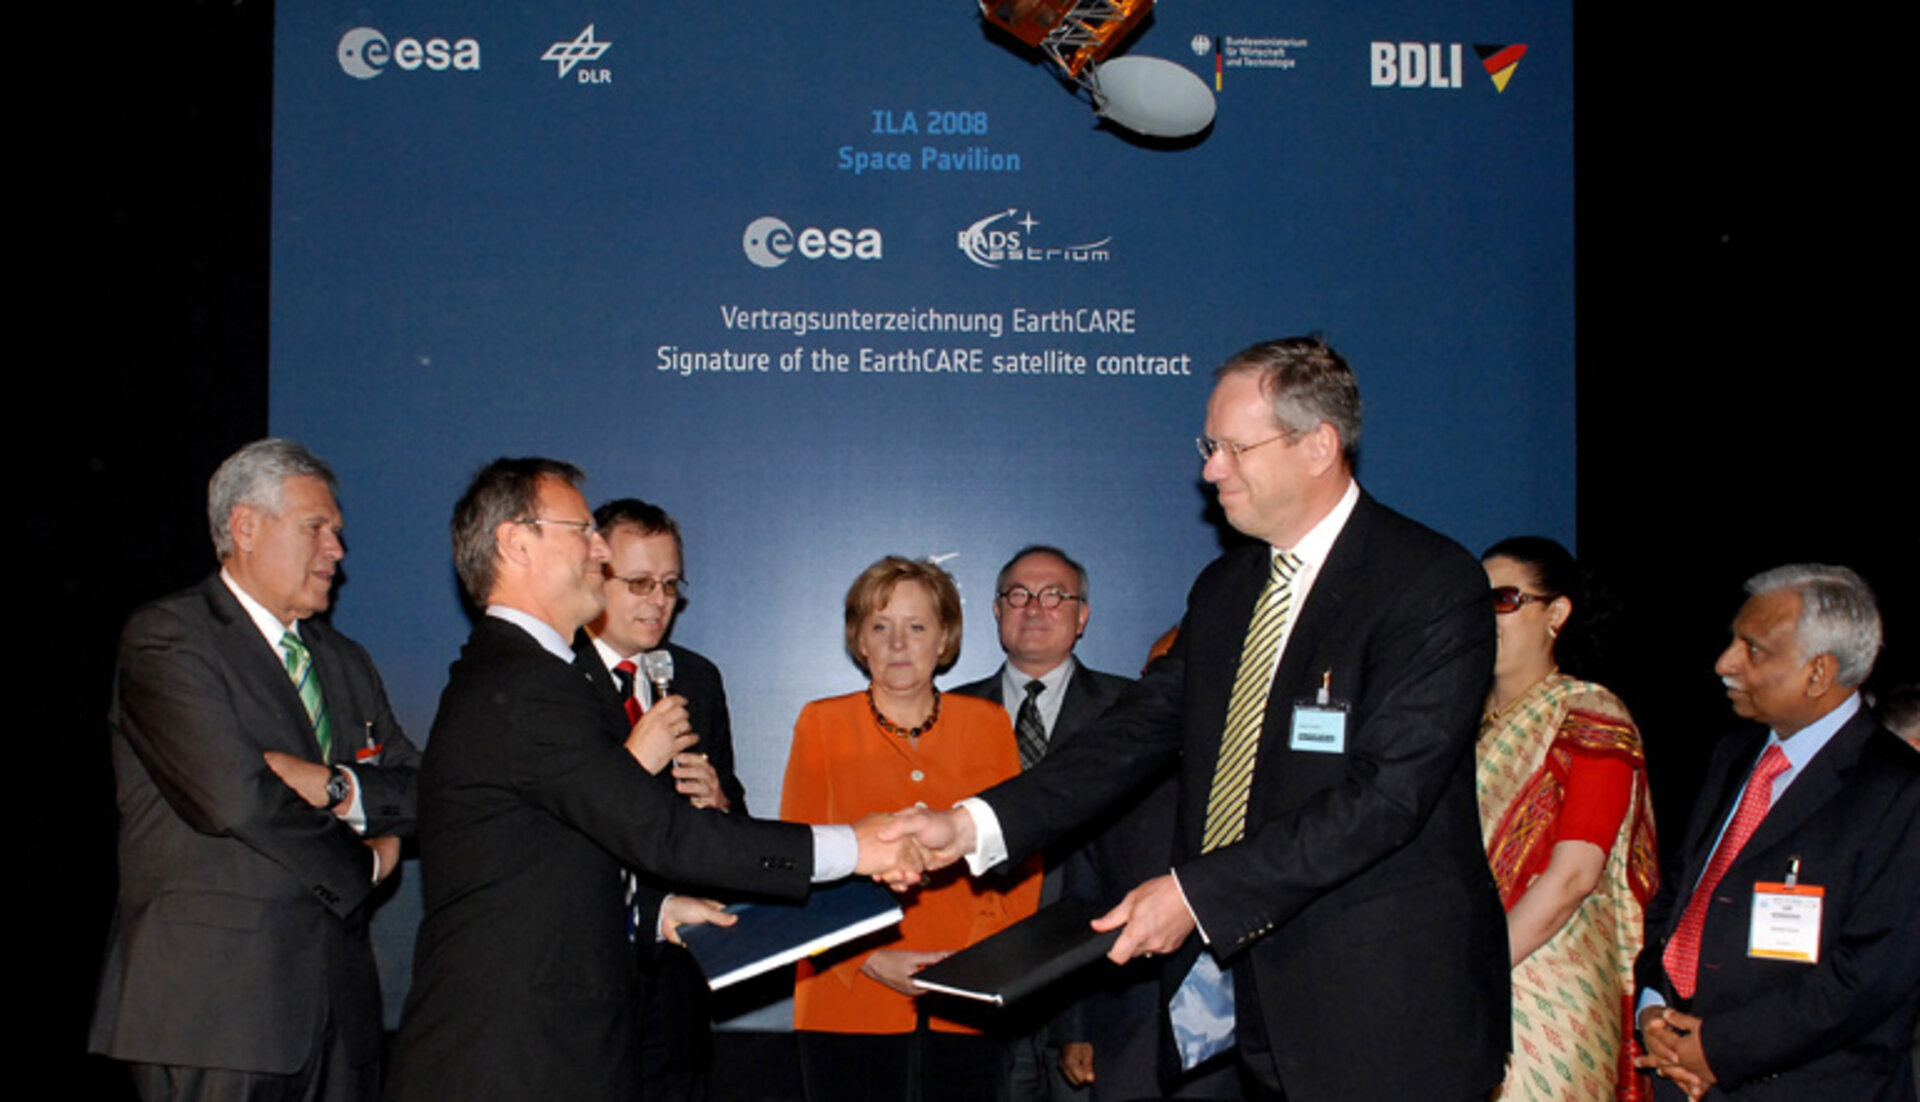 Signature of the EarthCARE contract at ILA